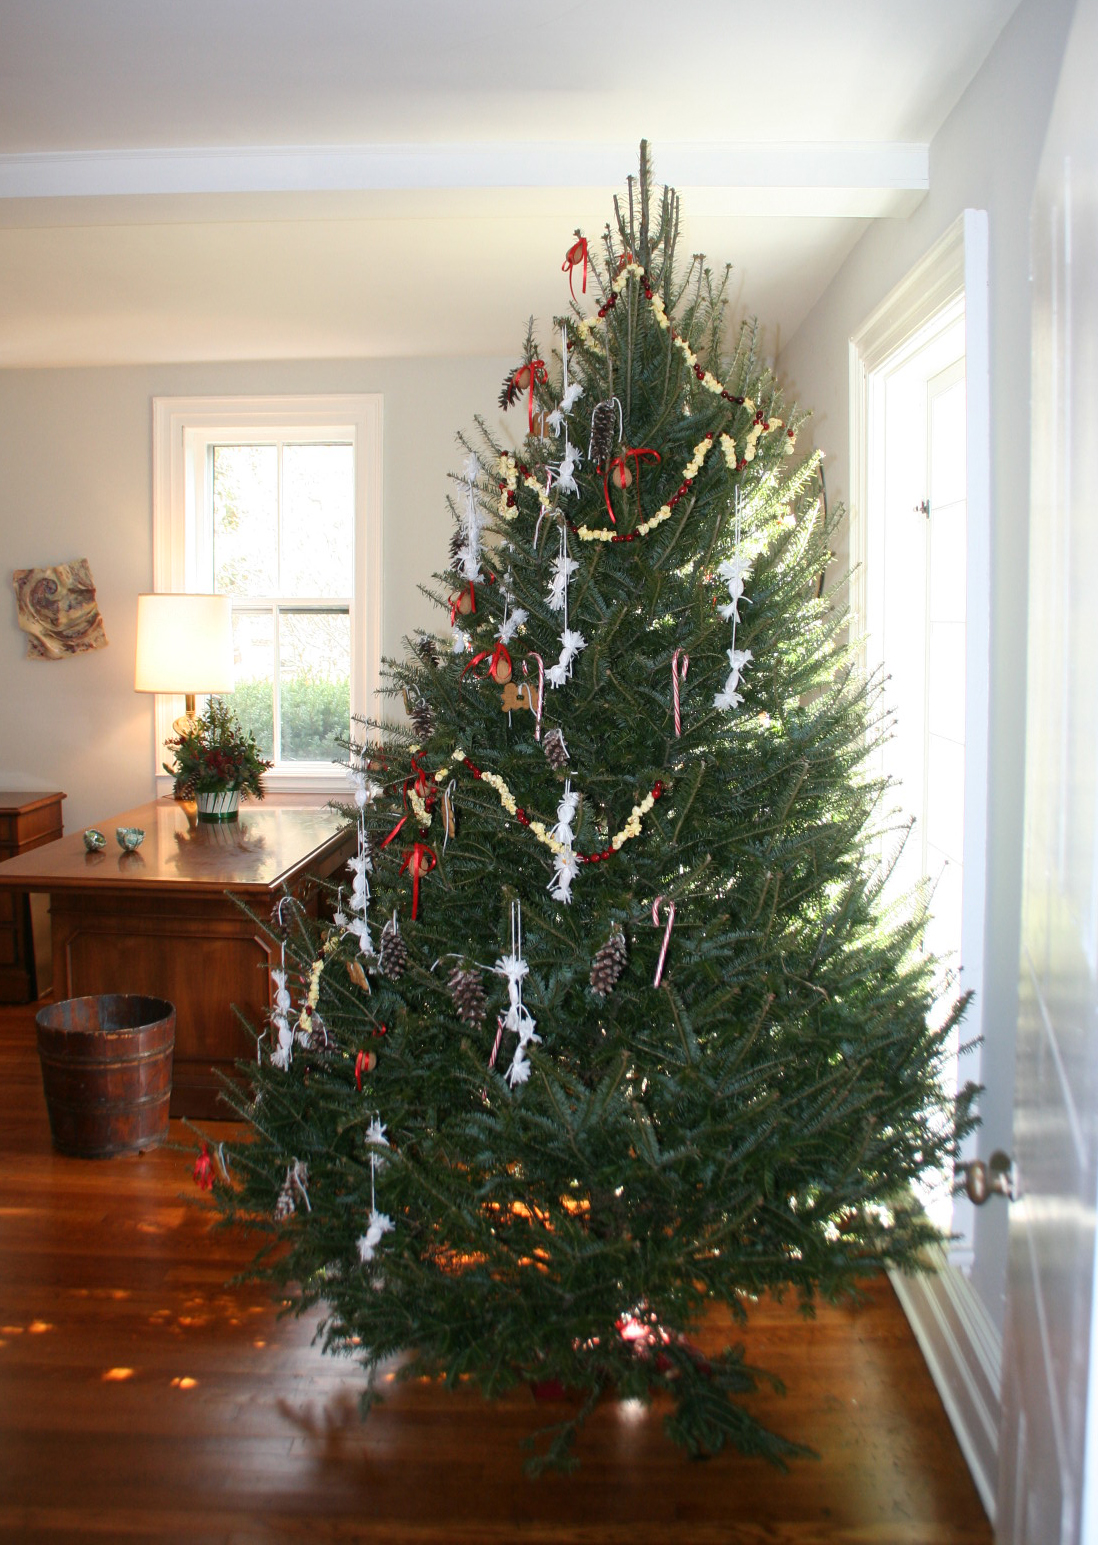 40 Old Fashioned Christmas Tree Decorations Ideas